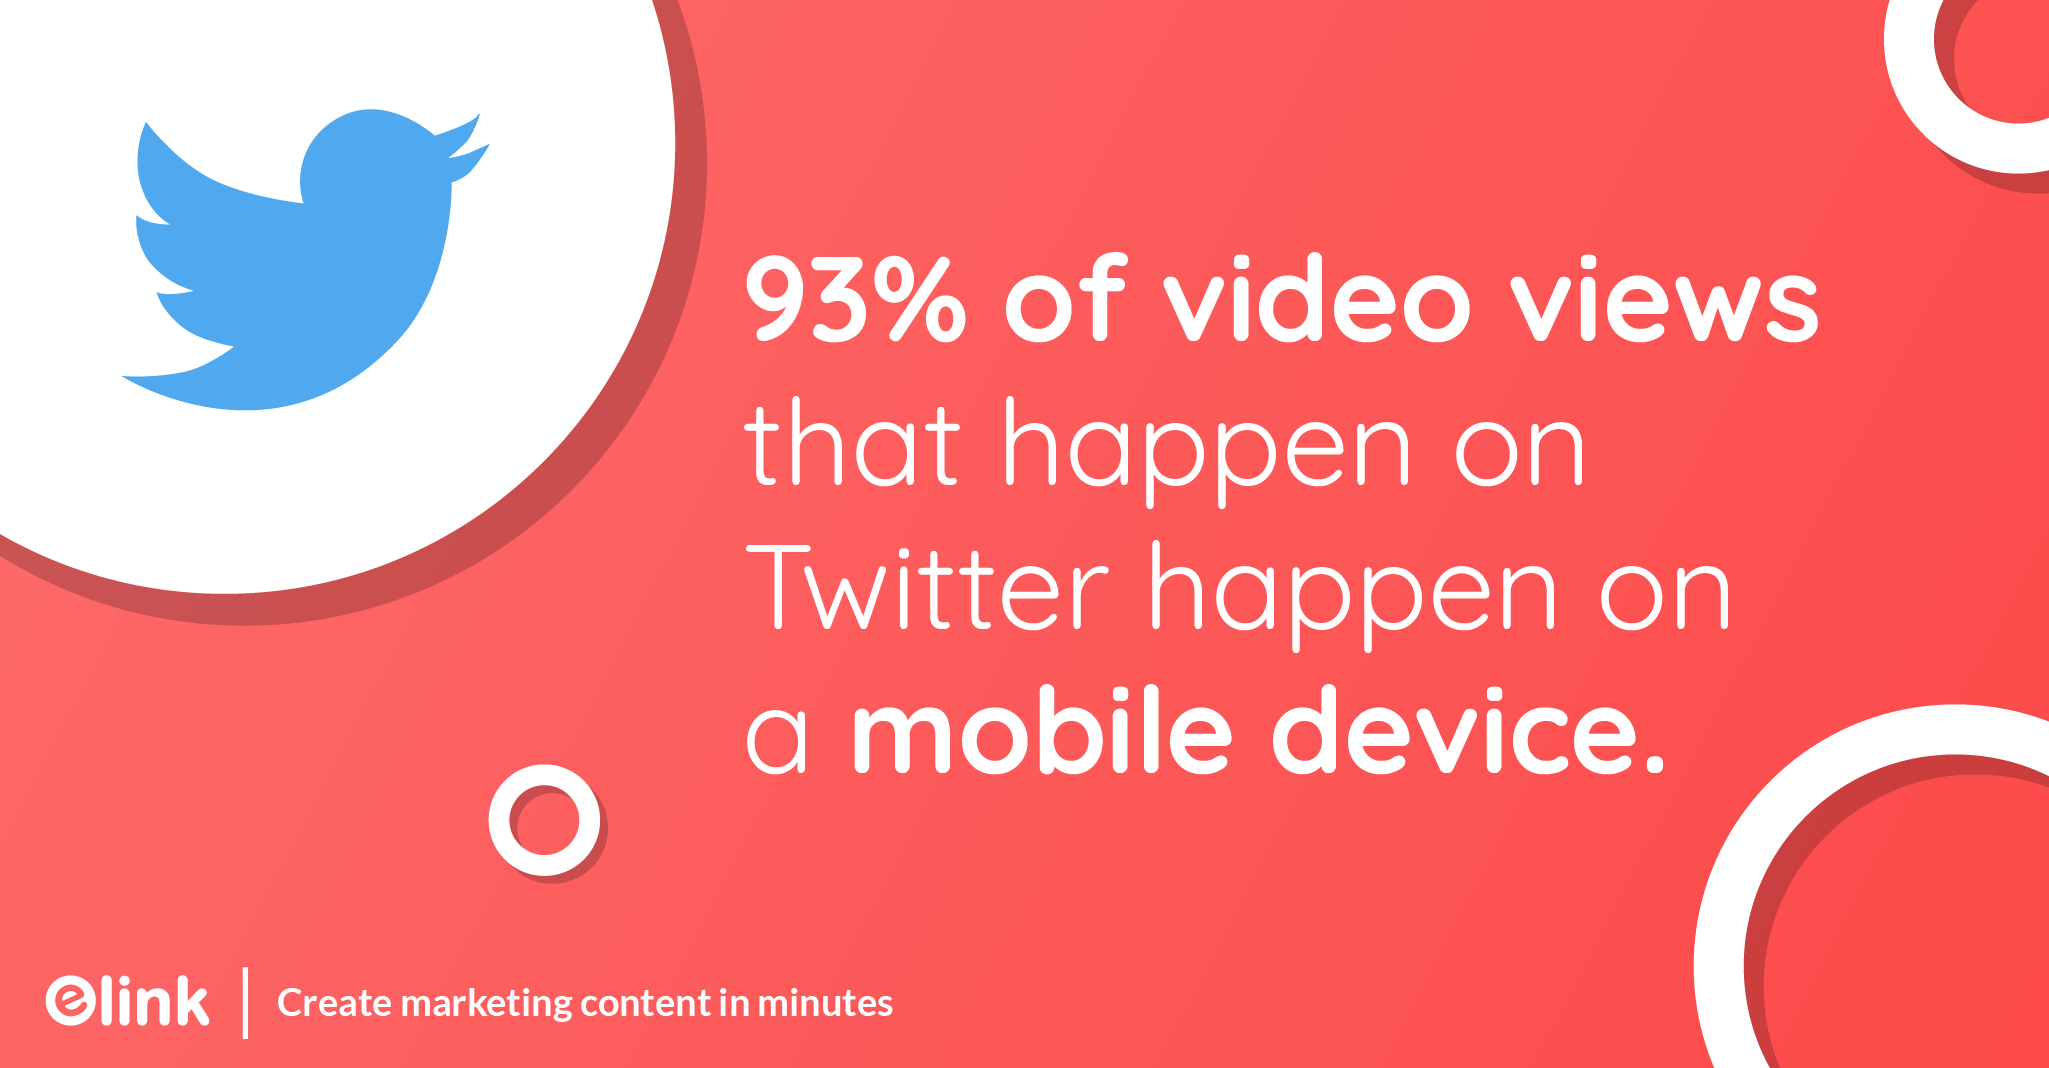 93% of video views that happen on Twitter happen on a mobile device.